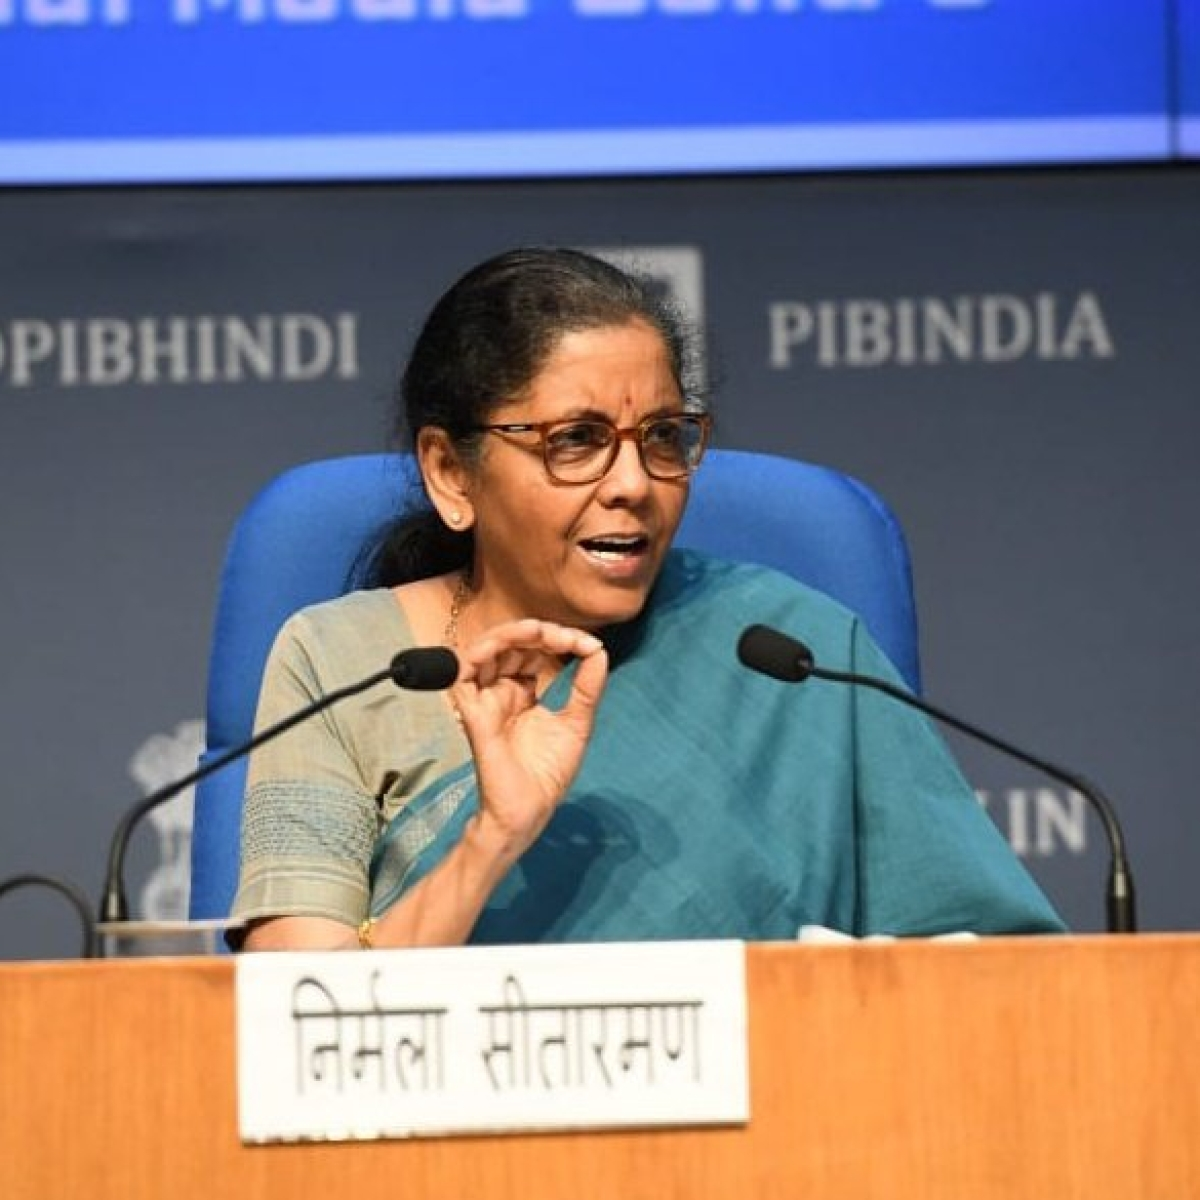 Govt to launch 'PM eVIDYA' for access to digital education announces FM Nirmala Sitharaman